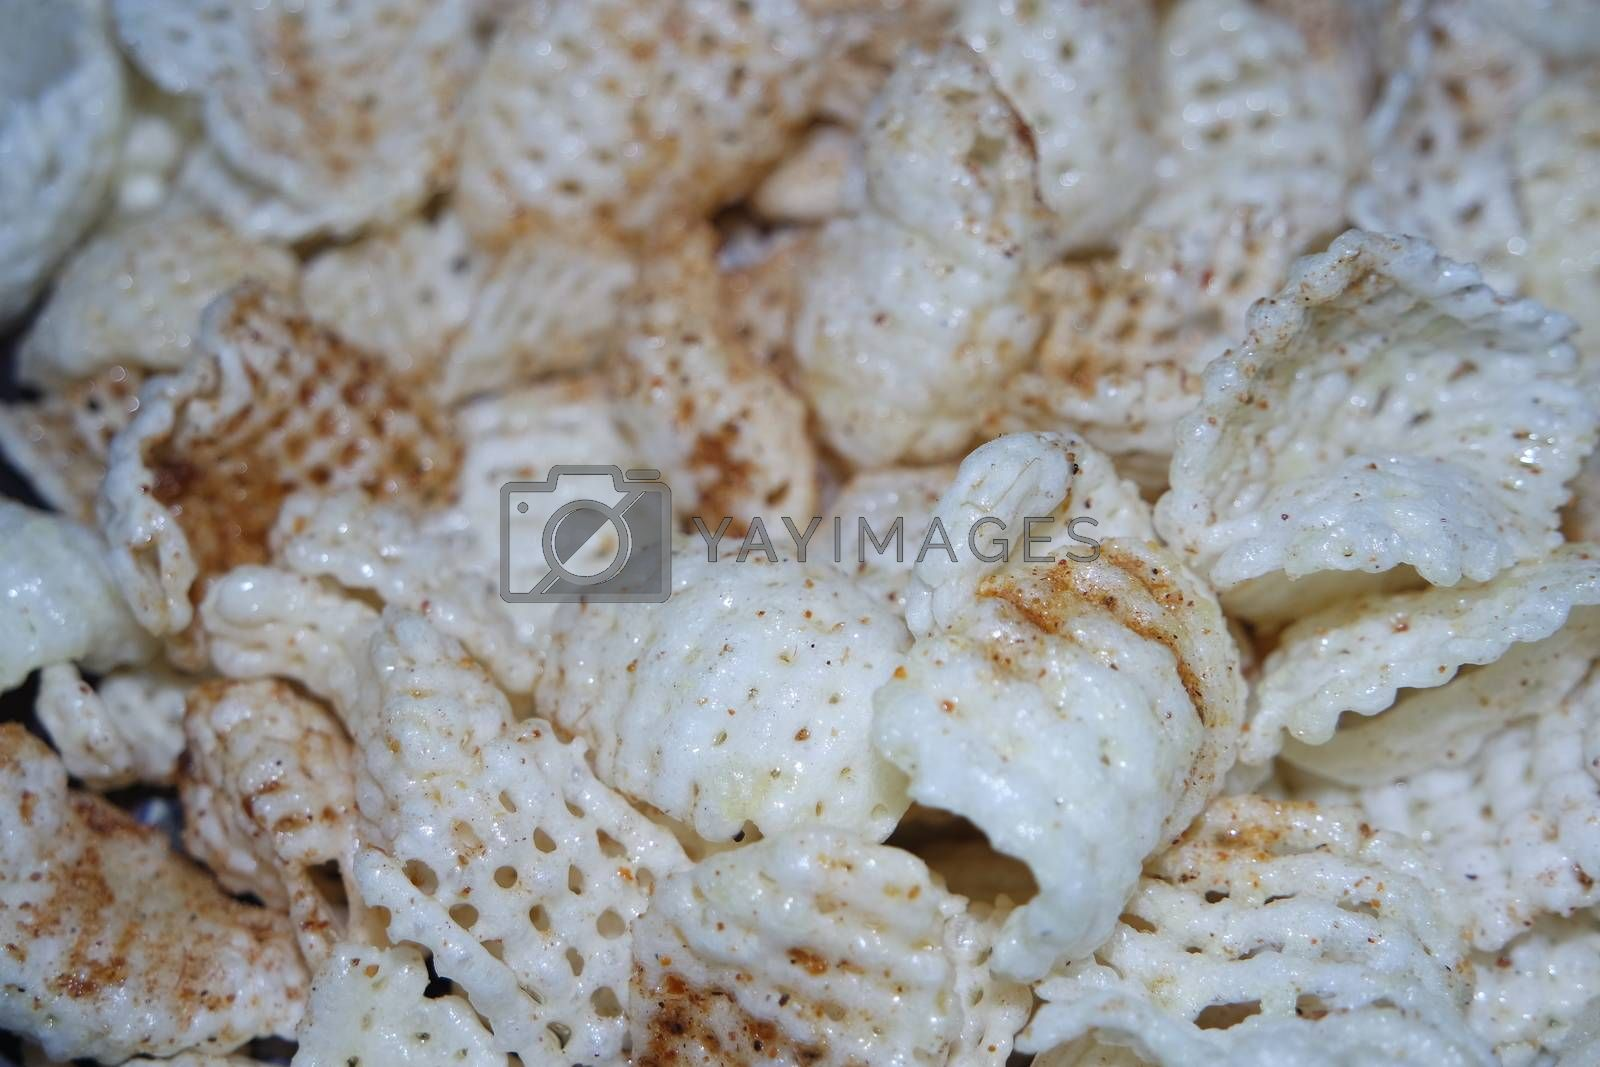 Royalty free image of Closeup view of freshly fried chips as fast food usually eaten with tea. by Photochowk